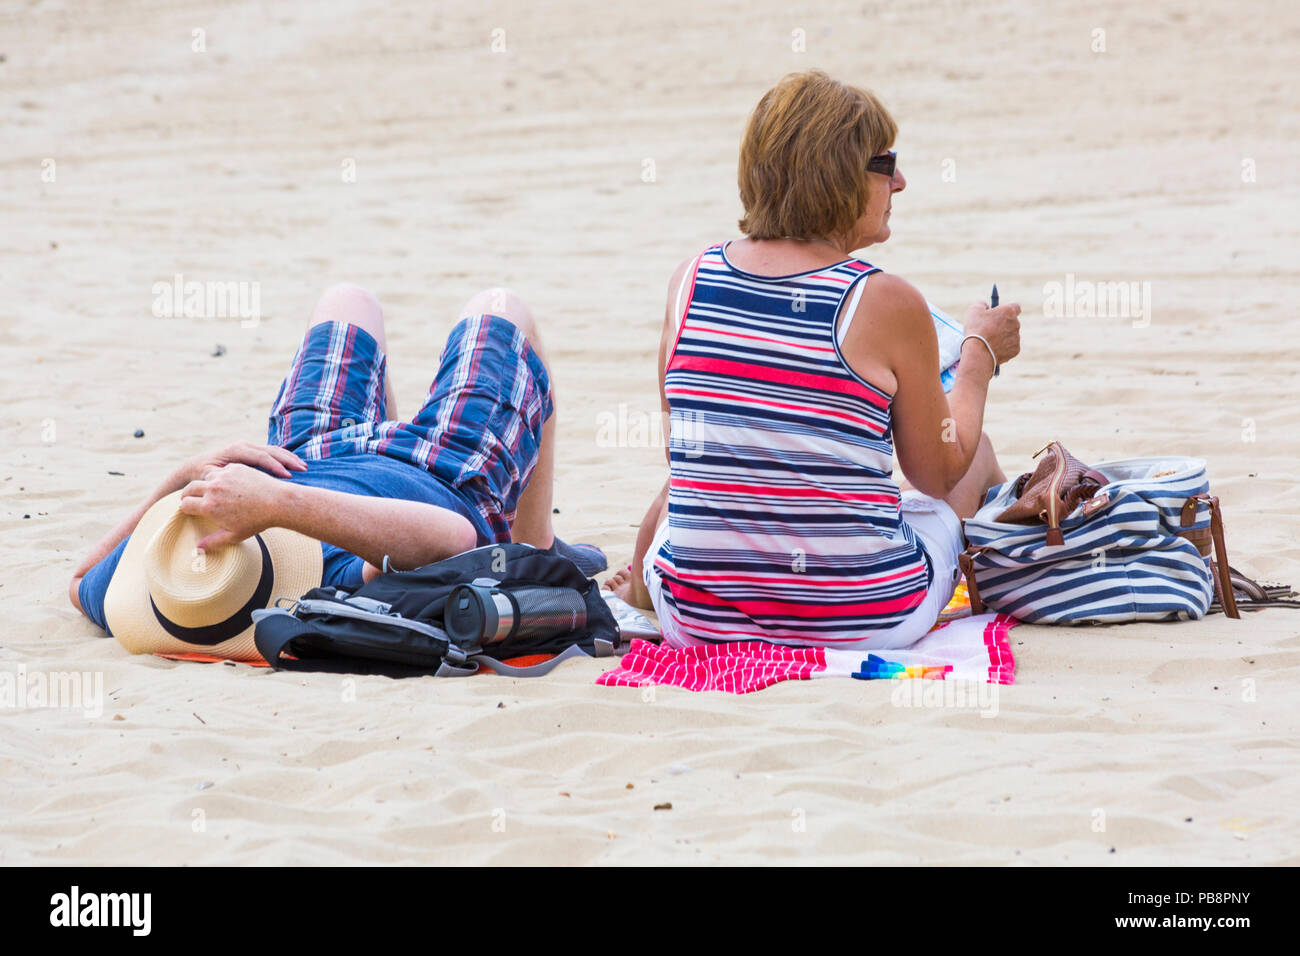 Bournemouth, Dorset, UK. 27th July 2018. UK weather: Sunseekers head to the seaside to soak up the sun at Bournemouth beaches on a warm humid day with some cloud cover. Mature couple relaxing on the beach. Credit: Carolyn Jenkins/Alamy Live News - Stock Image